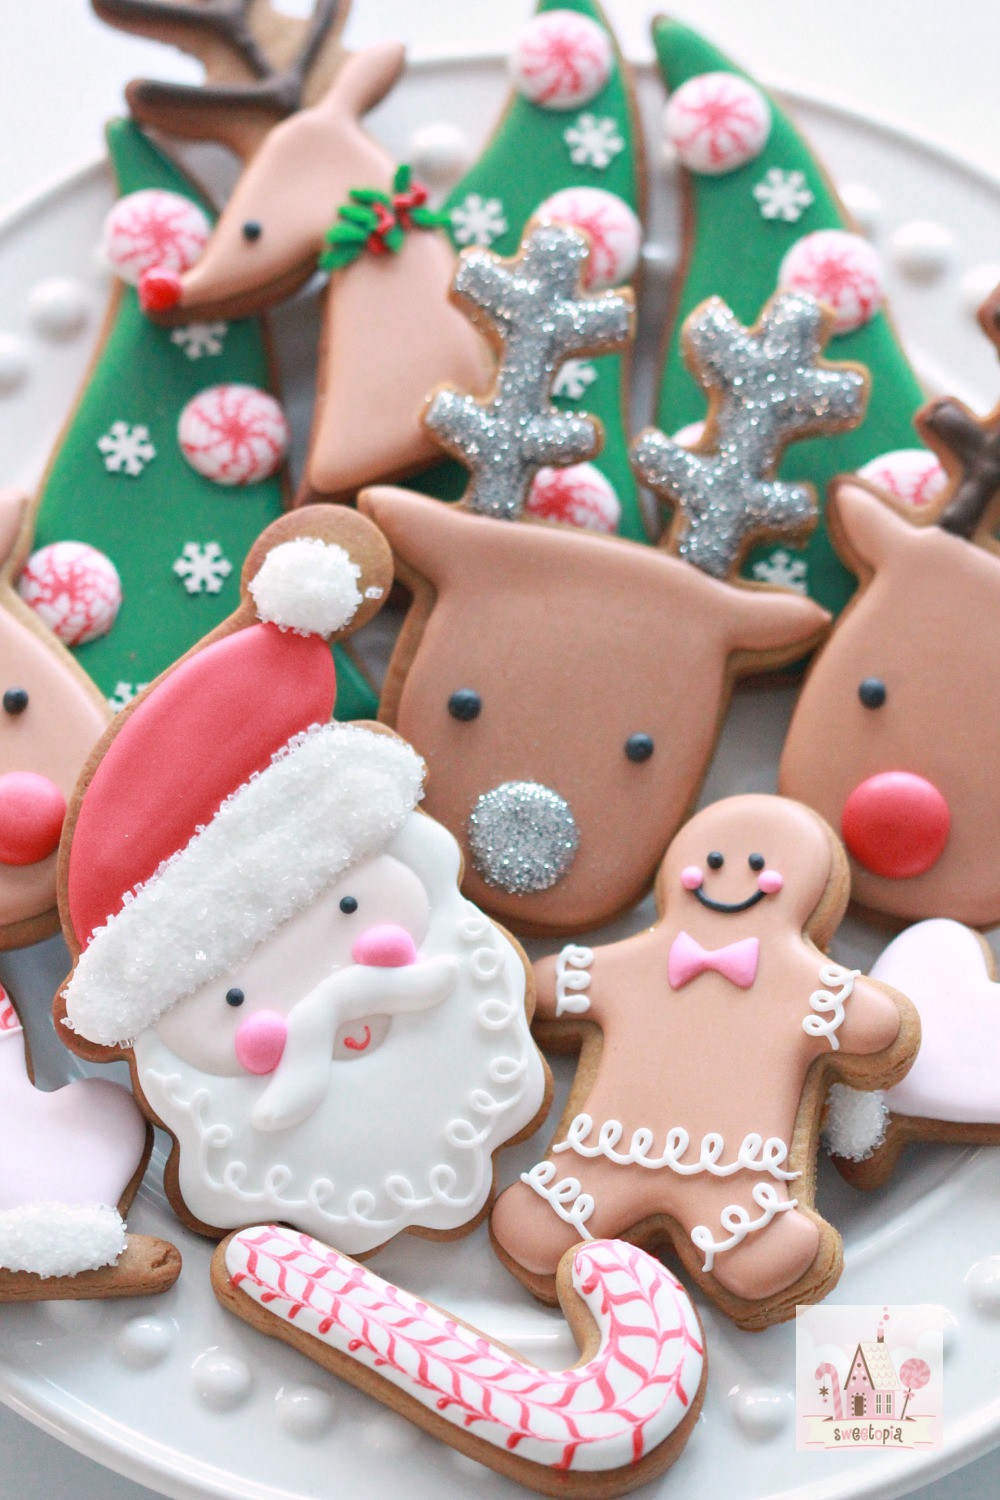 Icing For Christmas Cookies  Video How to Decorate Christmas Cookies Simple Designs